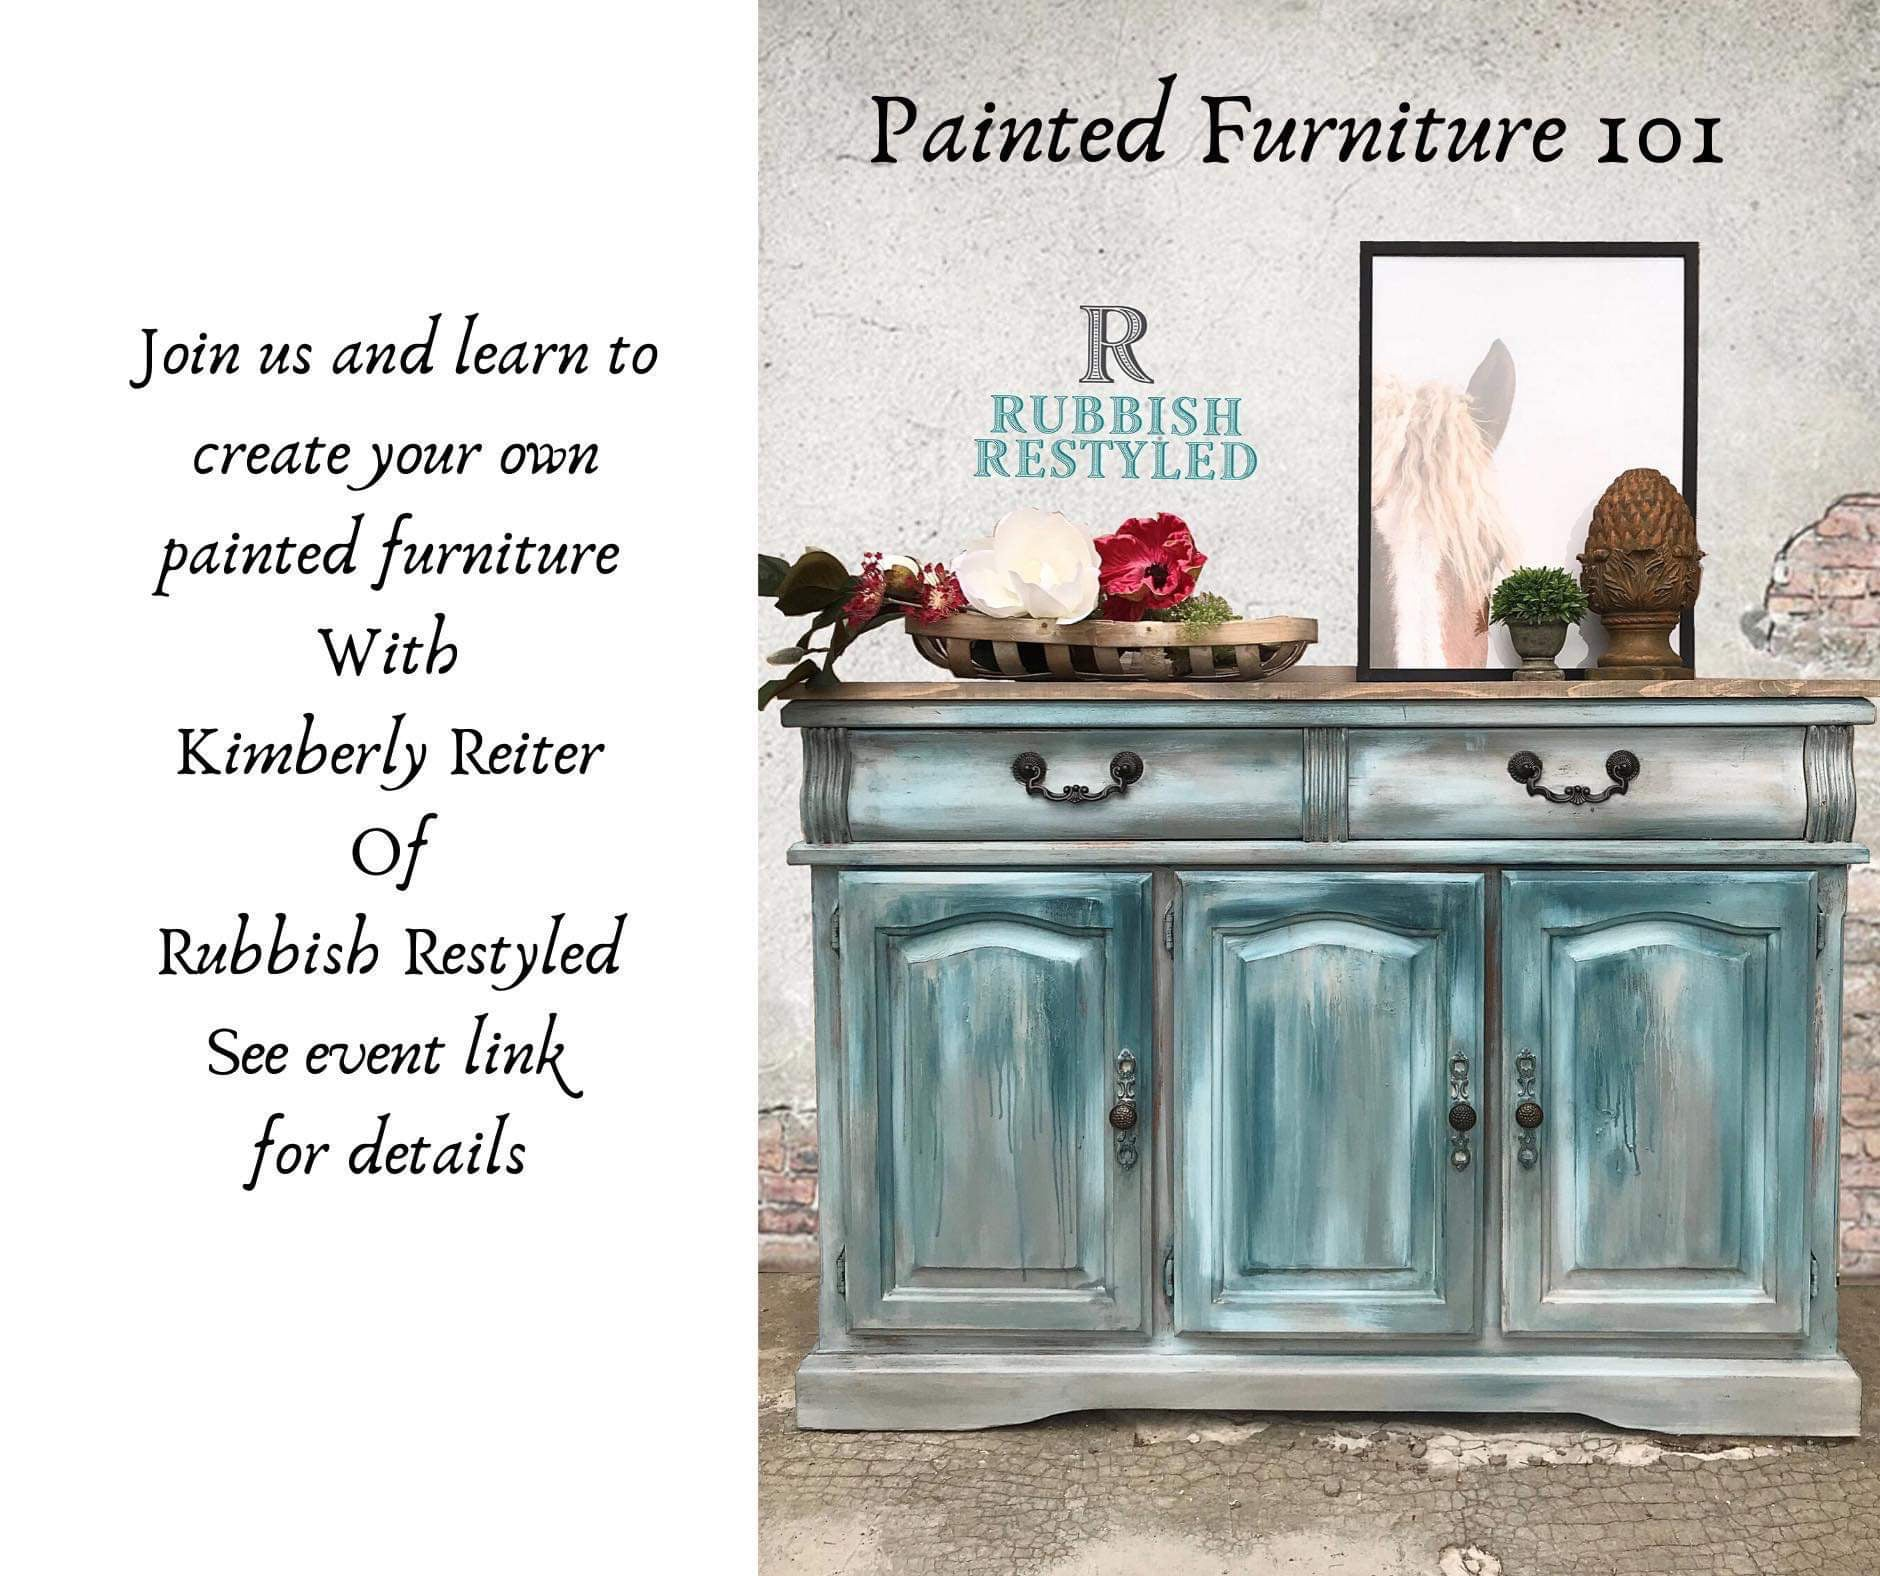 March 14th | 1:00 - 4:00  | Furniture Painting 101 with DIY Paint